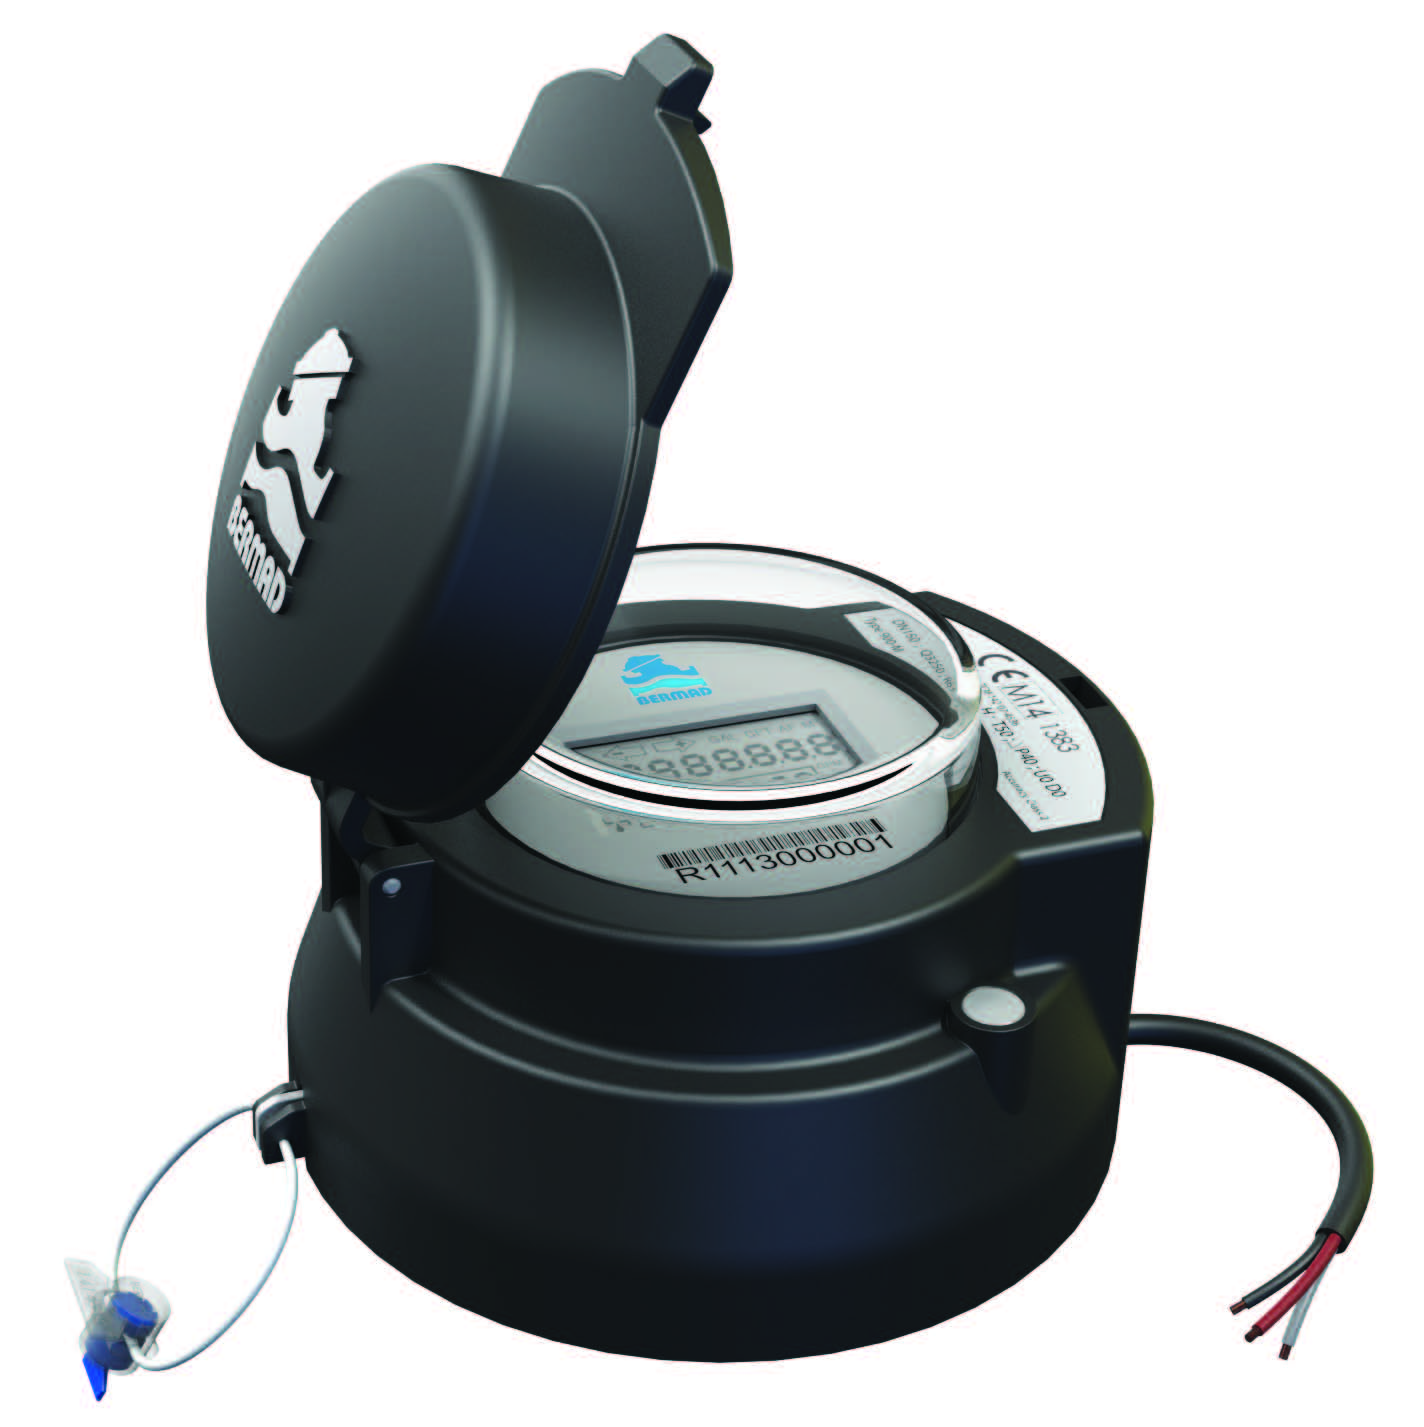 TURBO-IR-E Water/Flow meter for irigation with pulse output